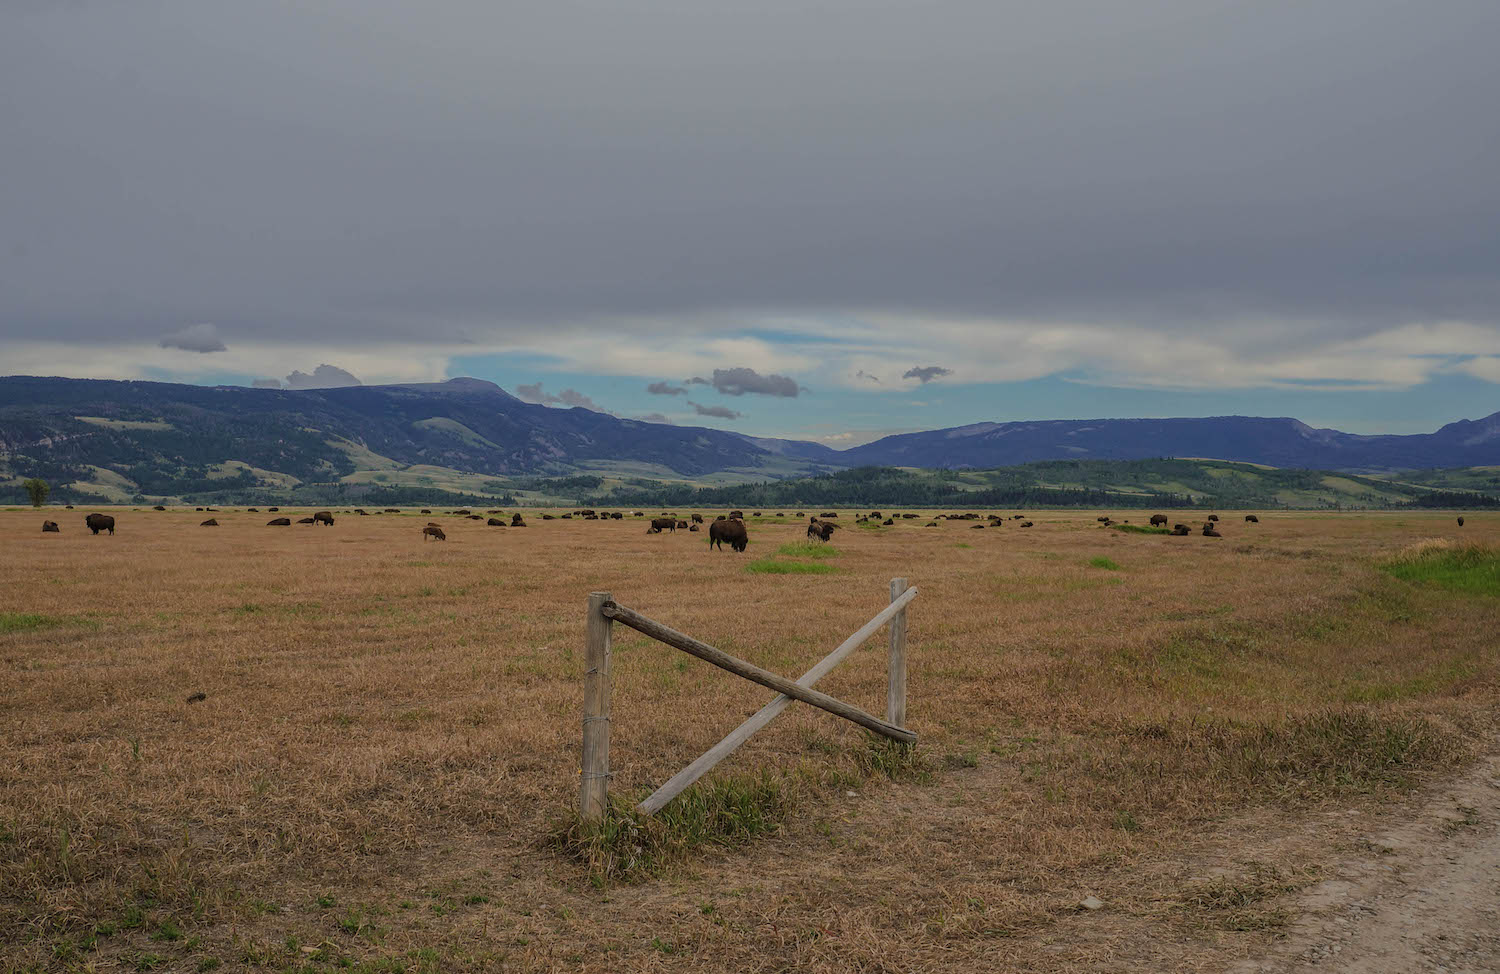 As we snapped pictures on Mormon Row,herds of bison started coming out. The perfect end to a perfect day.